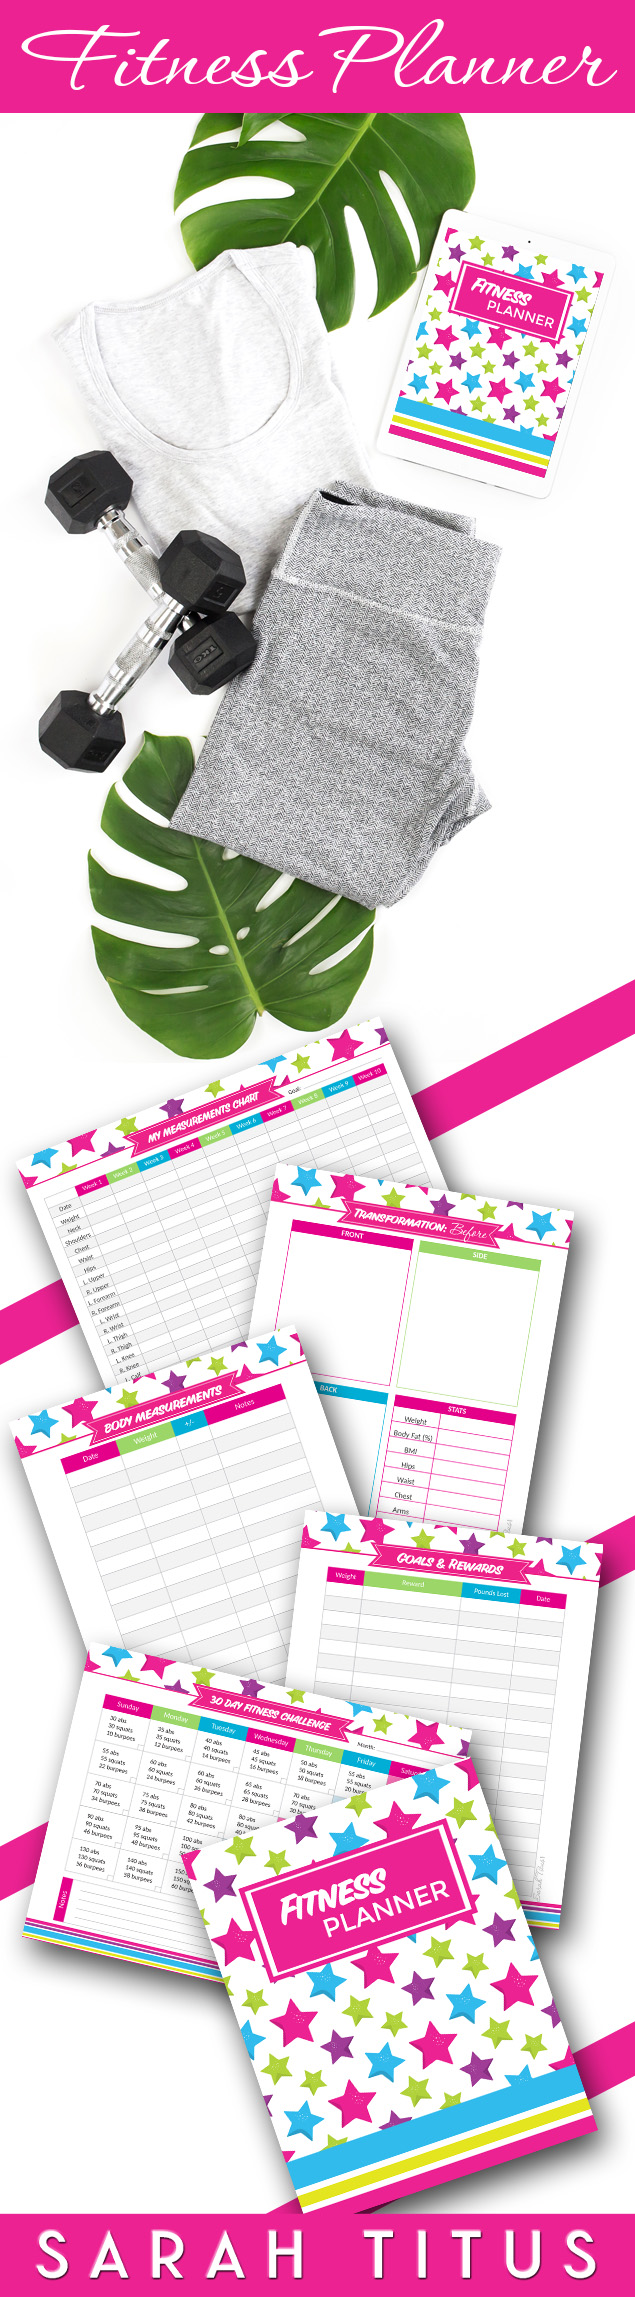 Whether you're just starting your exercise routine or been at it for years, this fitness planner printables set will help you get in shape and organize your fitness plan. #fitnessplan #loseweight #fitness #fitnessbinder #fitnessplanner #binder #planner